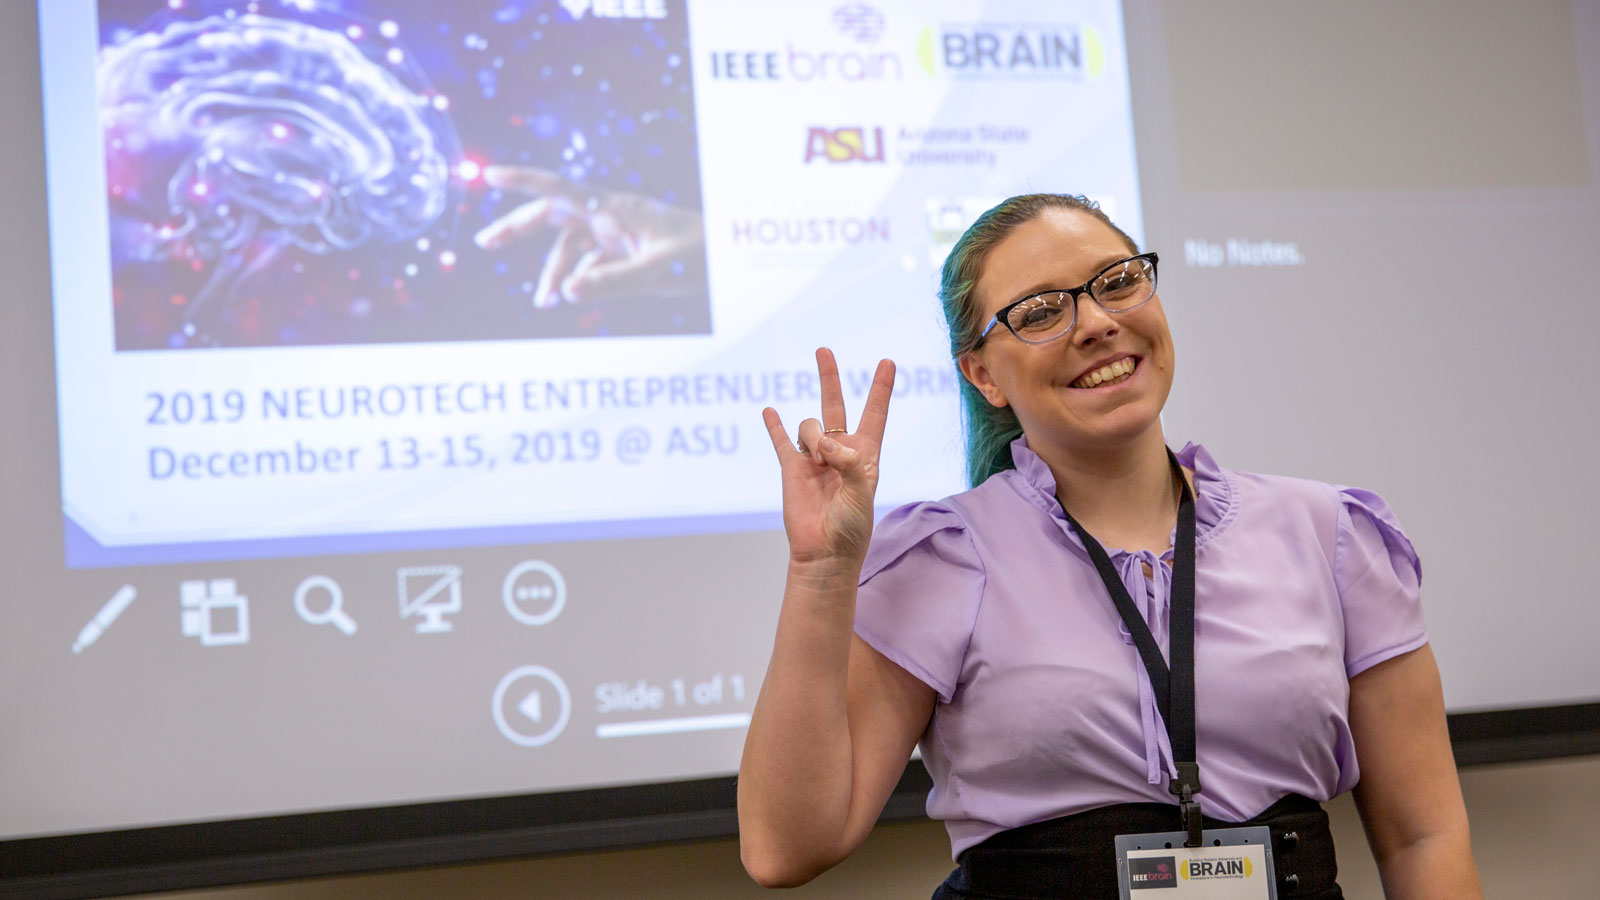 Kassondra Hickey poses at the IEEE Brain 2019 Neurotech Entrepreneurs Workshop.